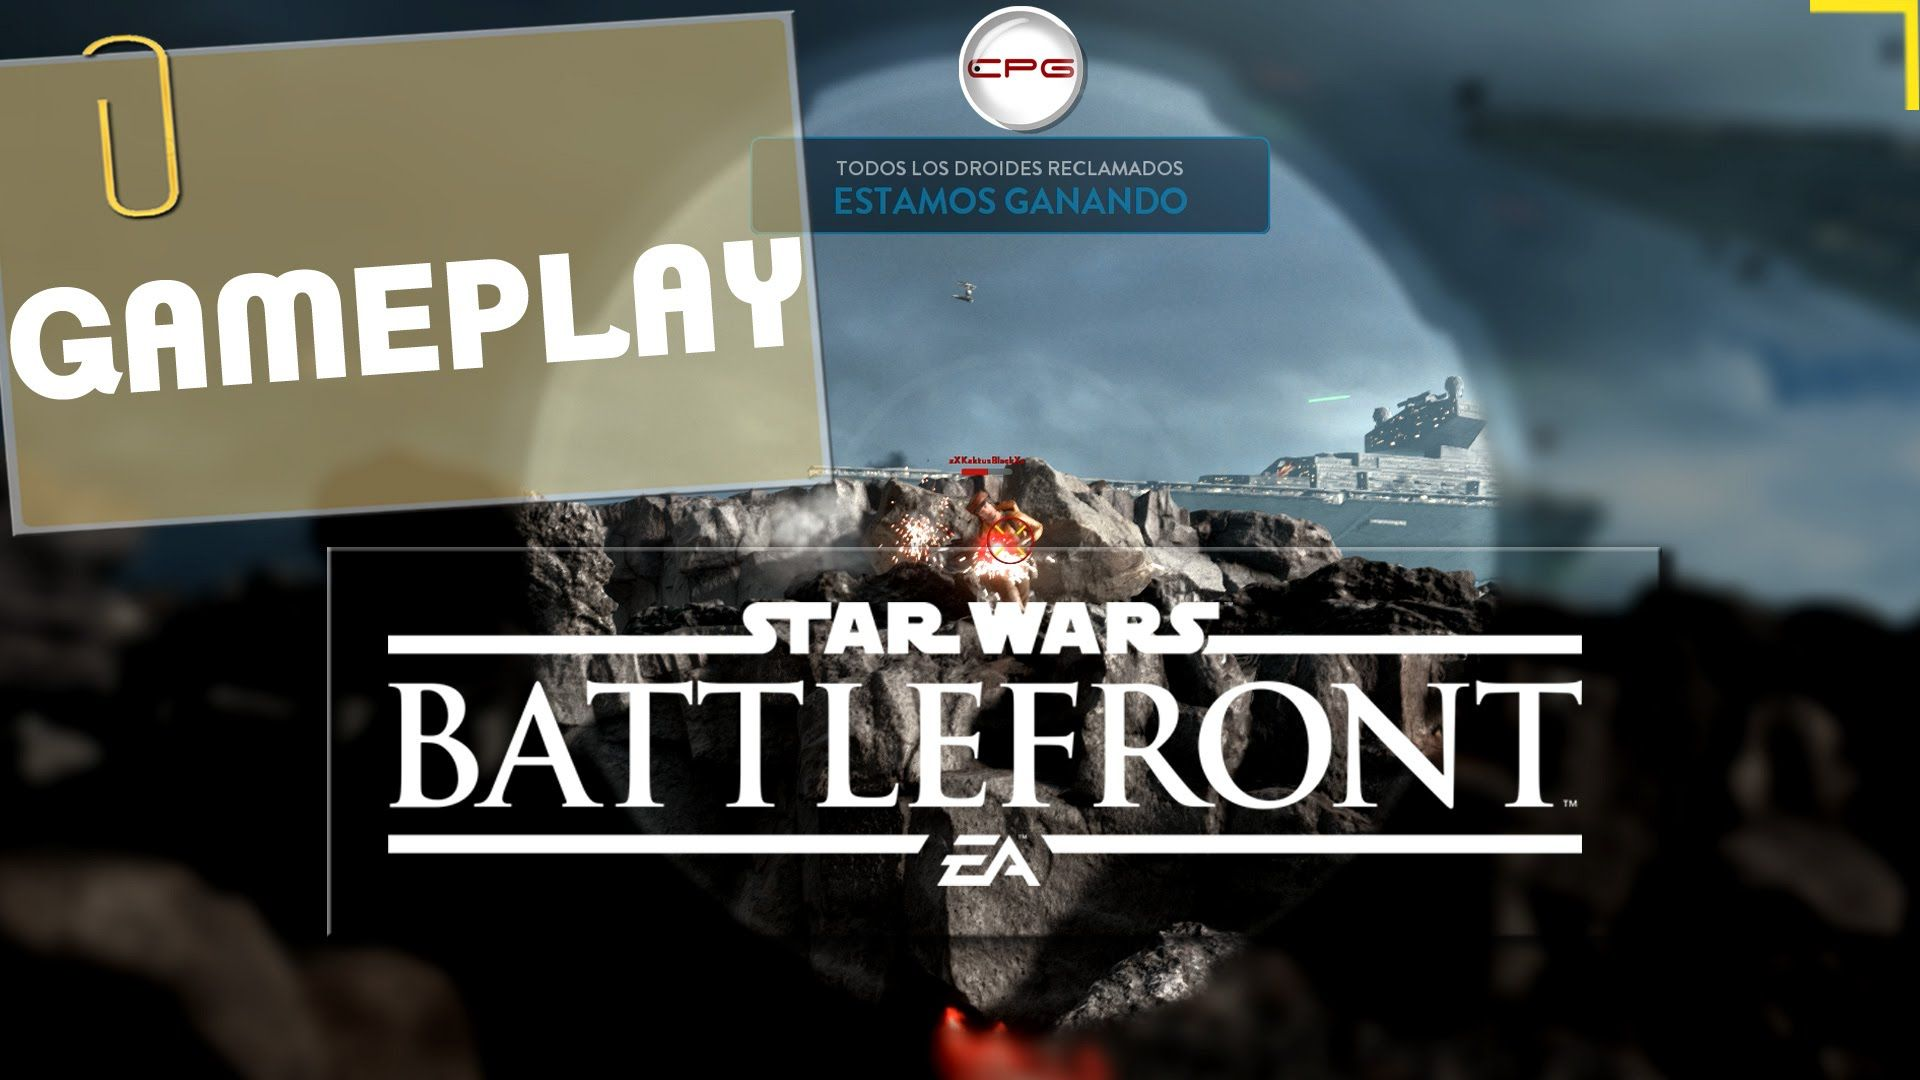 Star wars Battlefrony Gameplay CPG Checkpoint Games